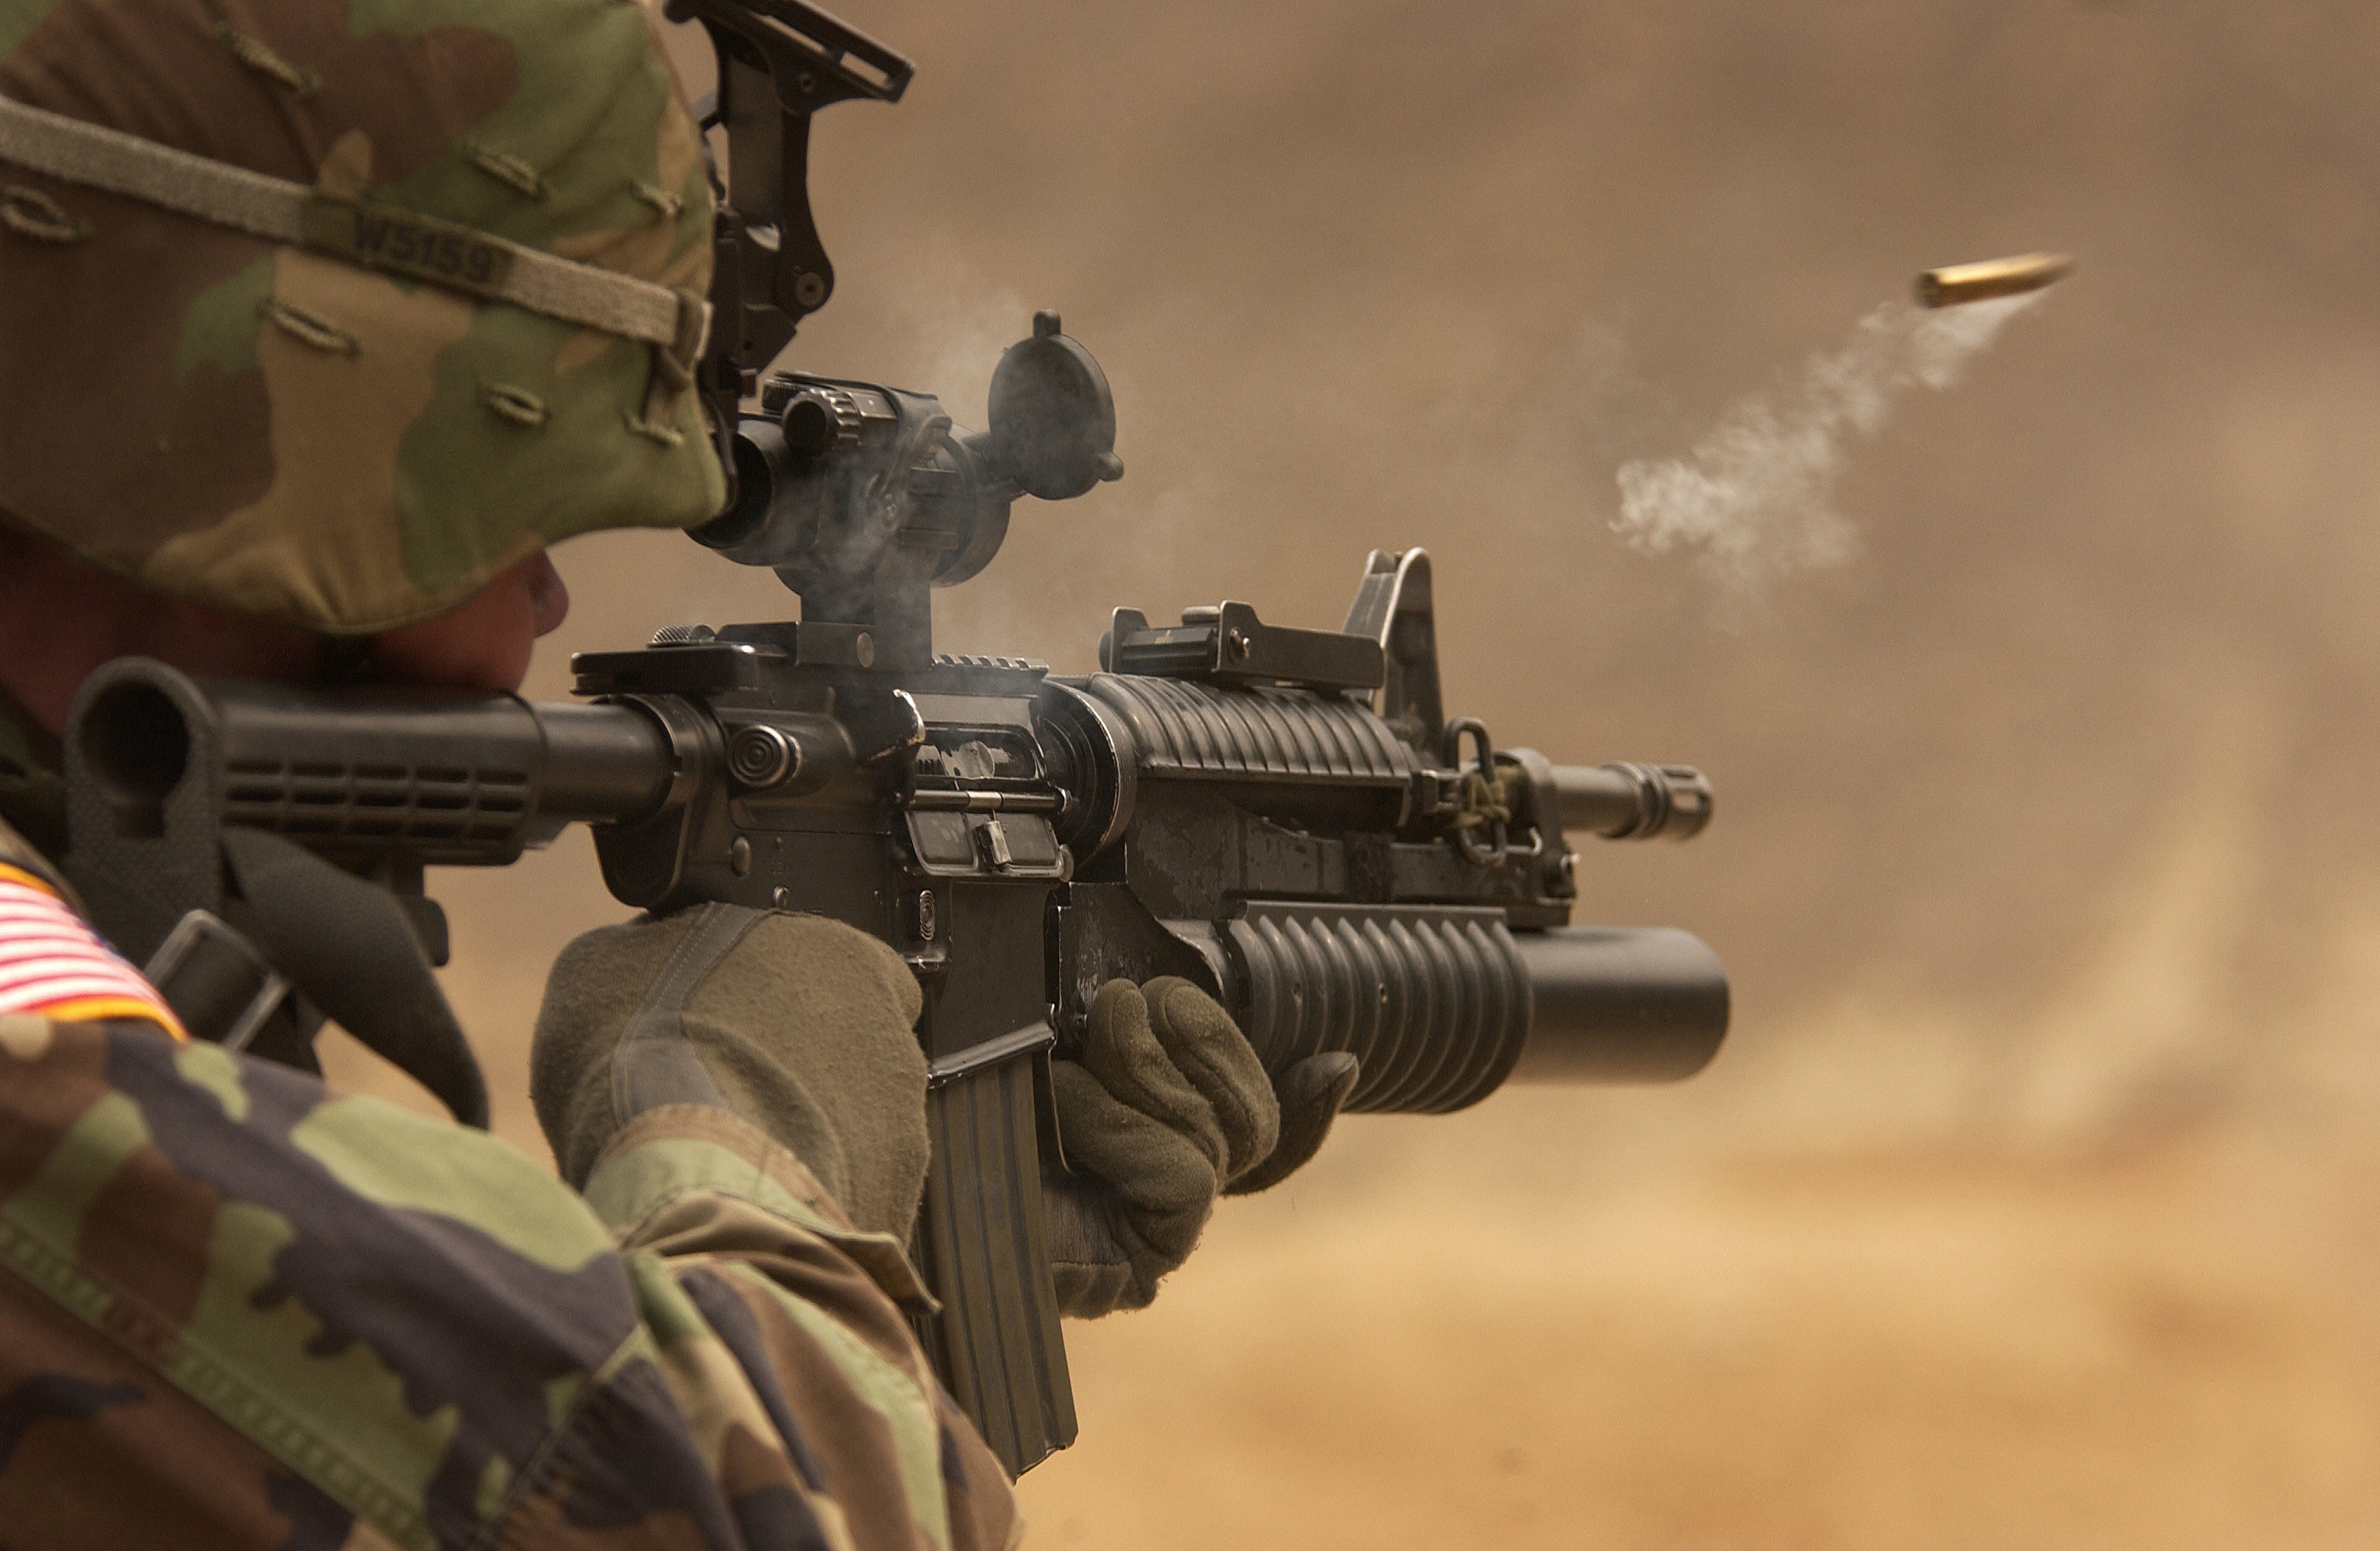 3008x1960 HD Wallpaper | Background ID:11385.  Military Soldier